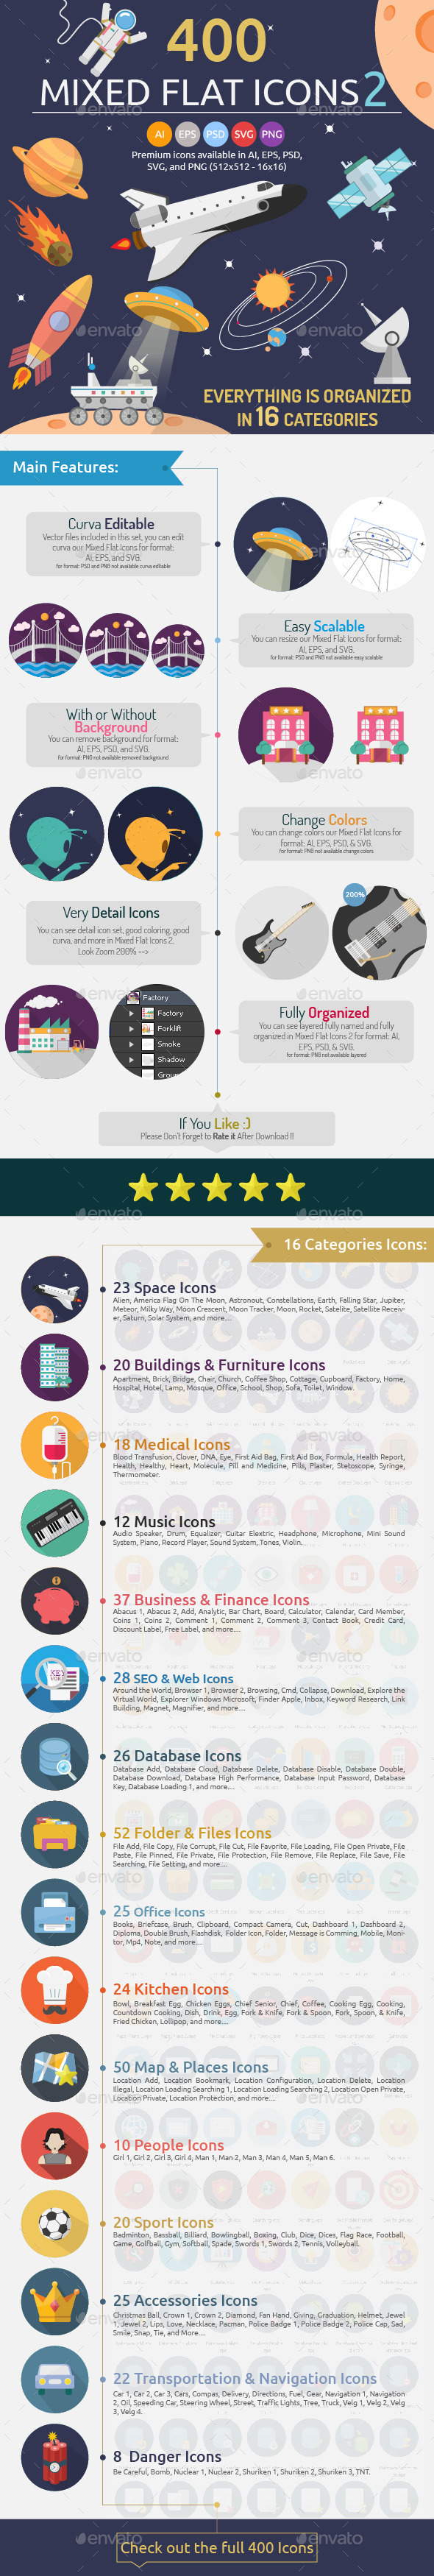 GraphicRiver 400 Mixed Flat Icons 2 9561708